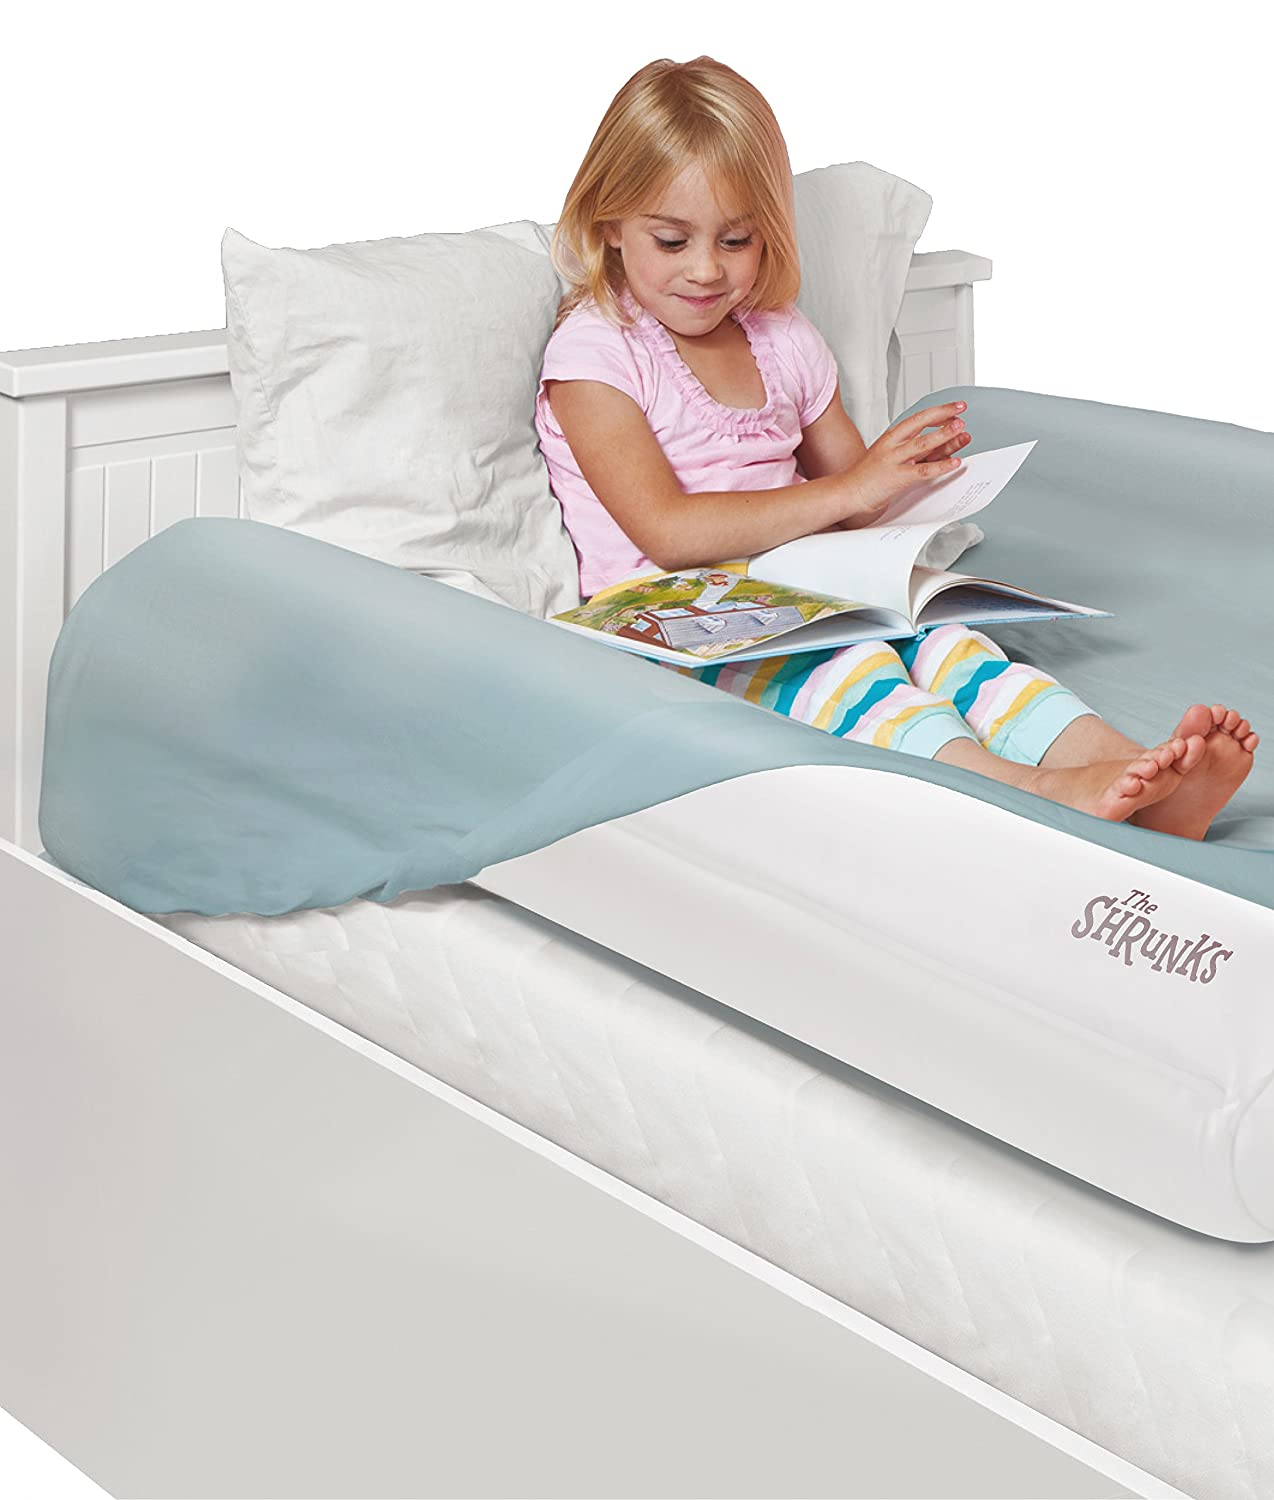 The Shrunks - Inflatable Bed Rail with Foot Pump (Two Pack) 88053